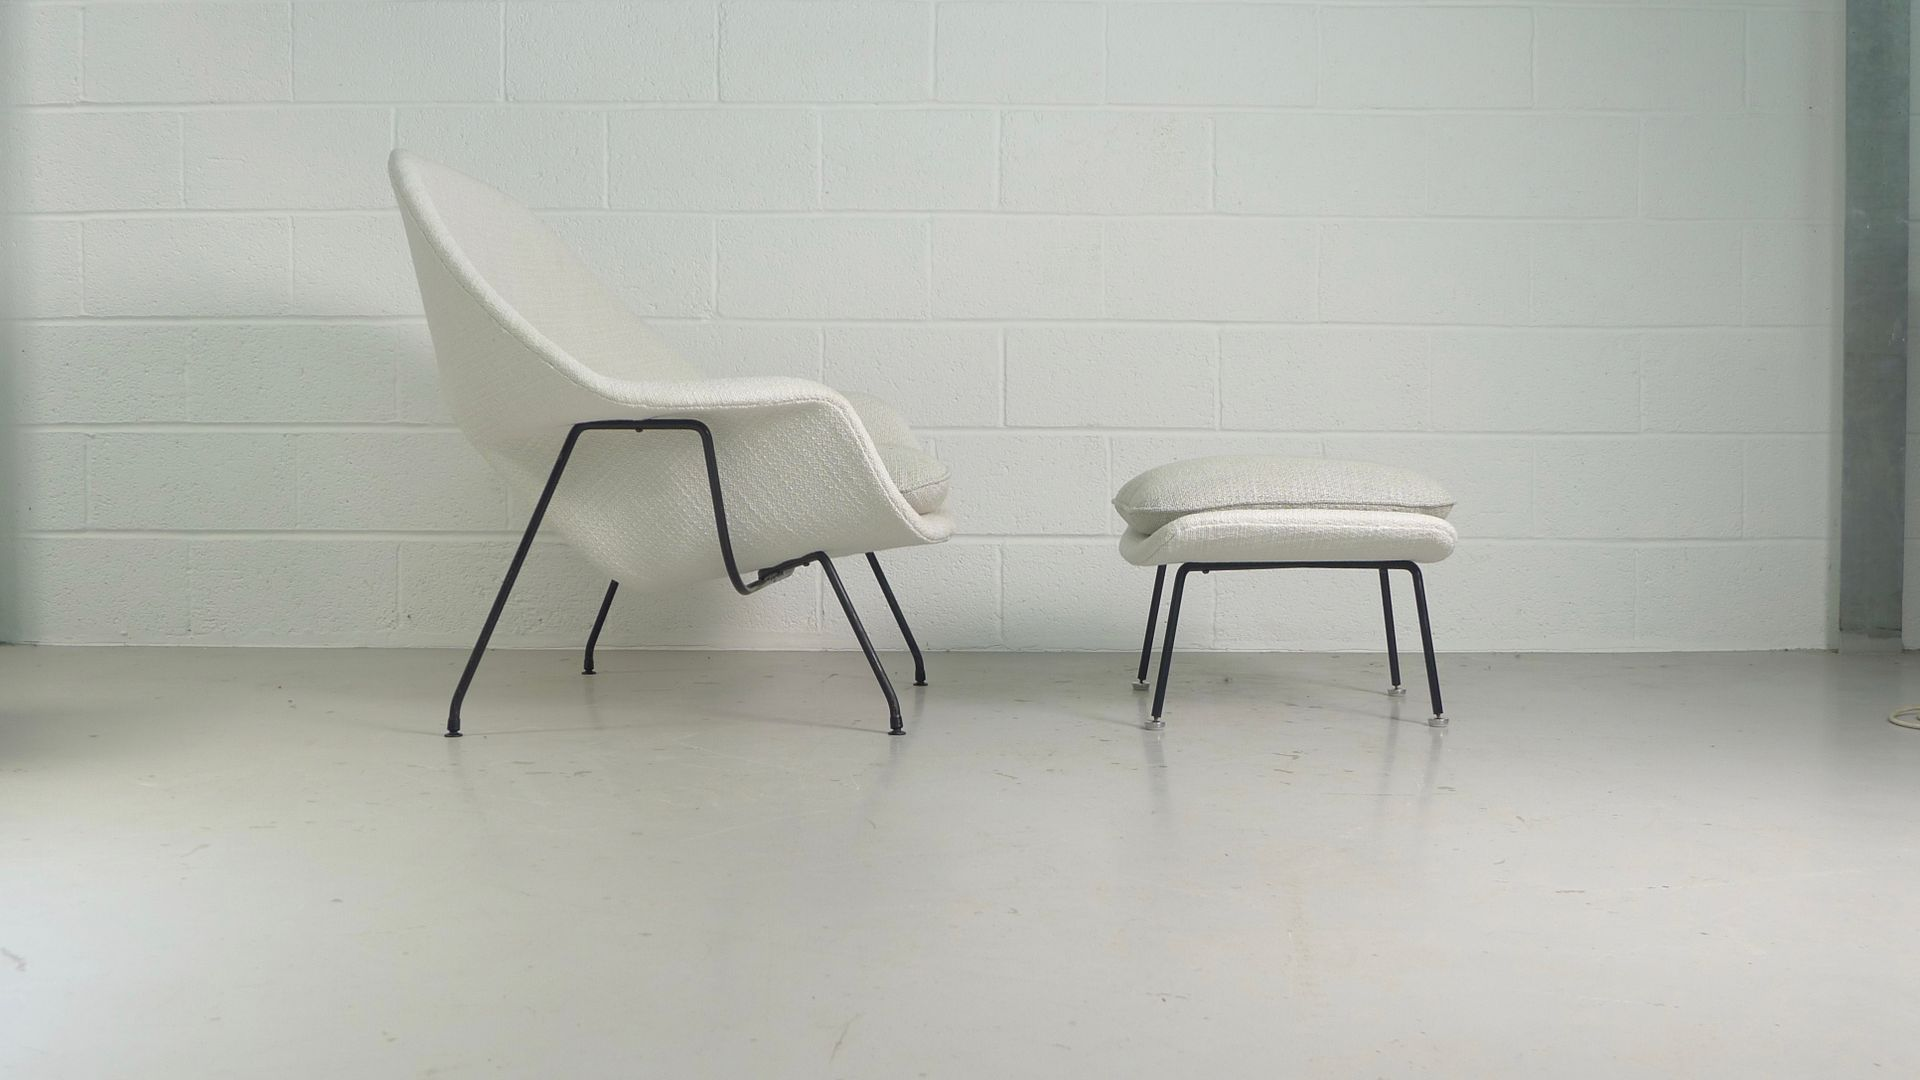 Vintage womb chair and ottoman by eero saarinen for knoll for sale at pamono - Vintage womb chair for sale ...